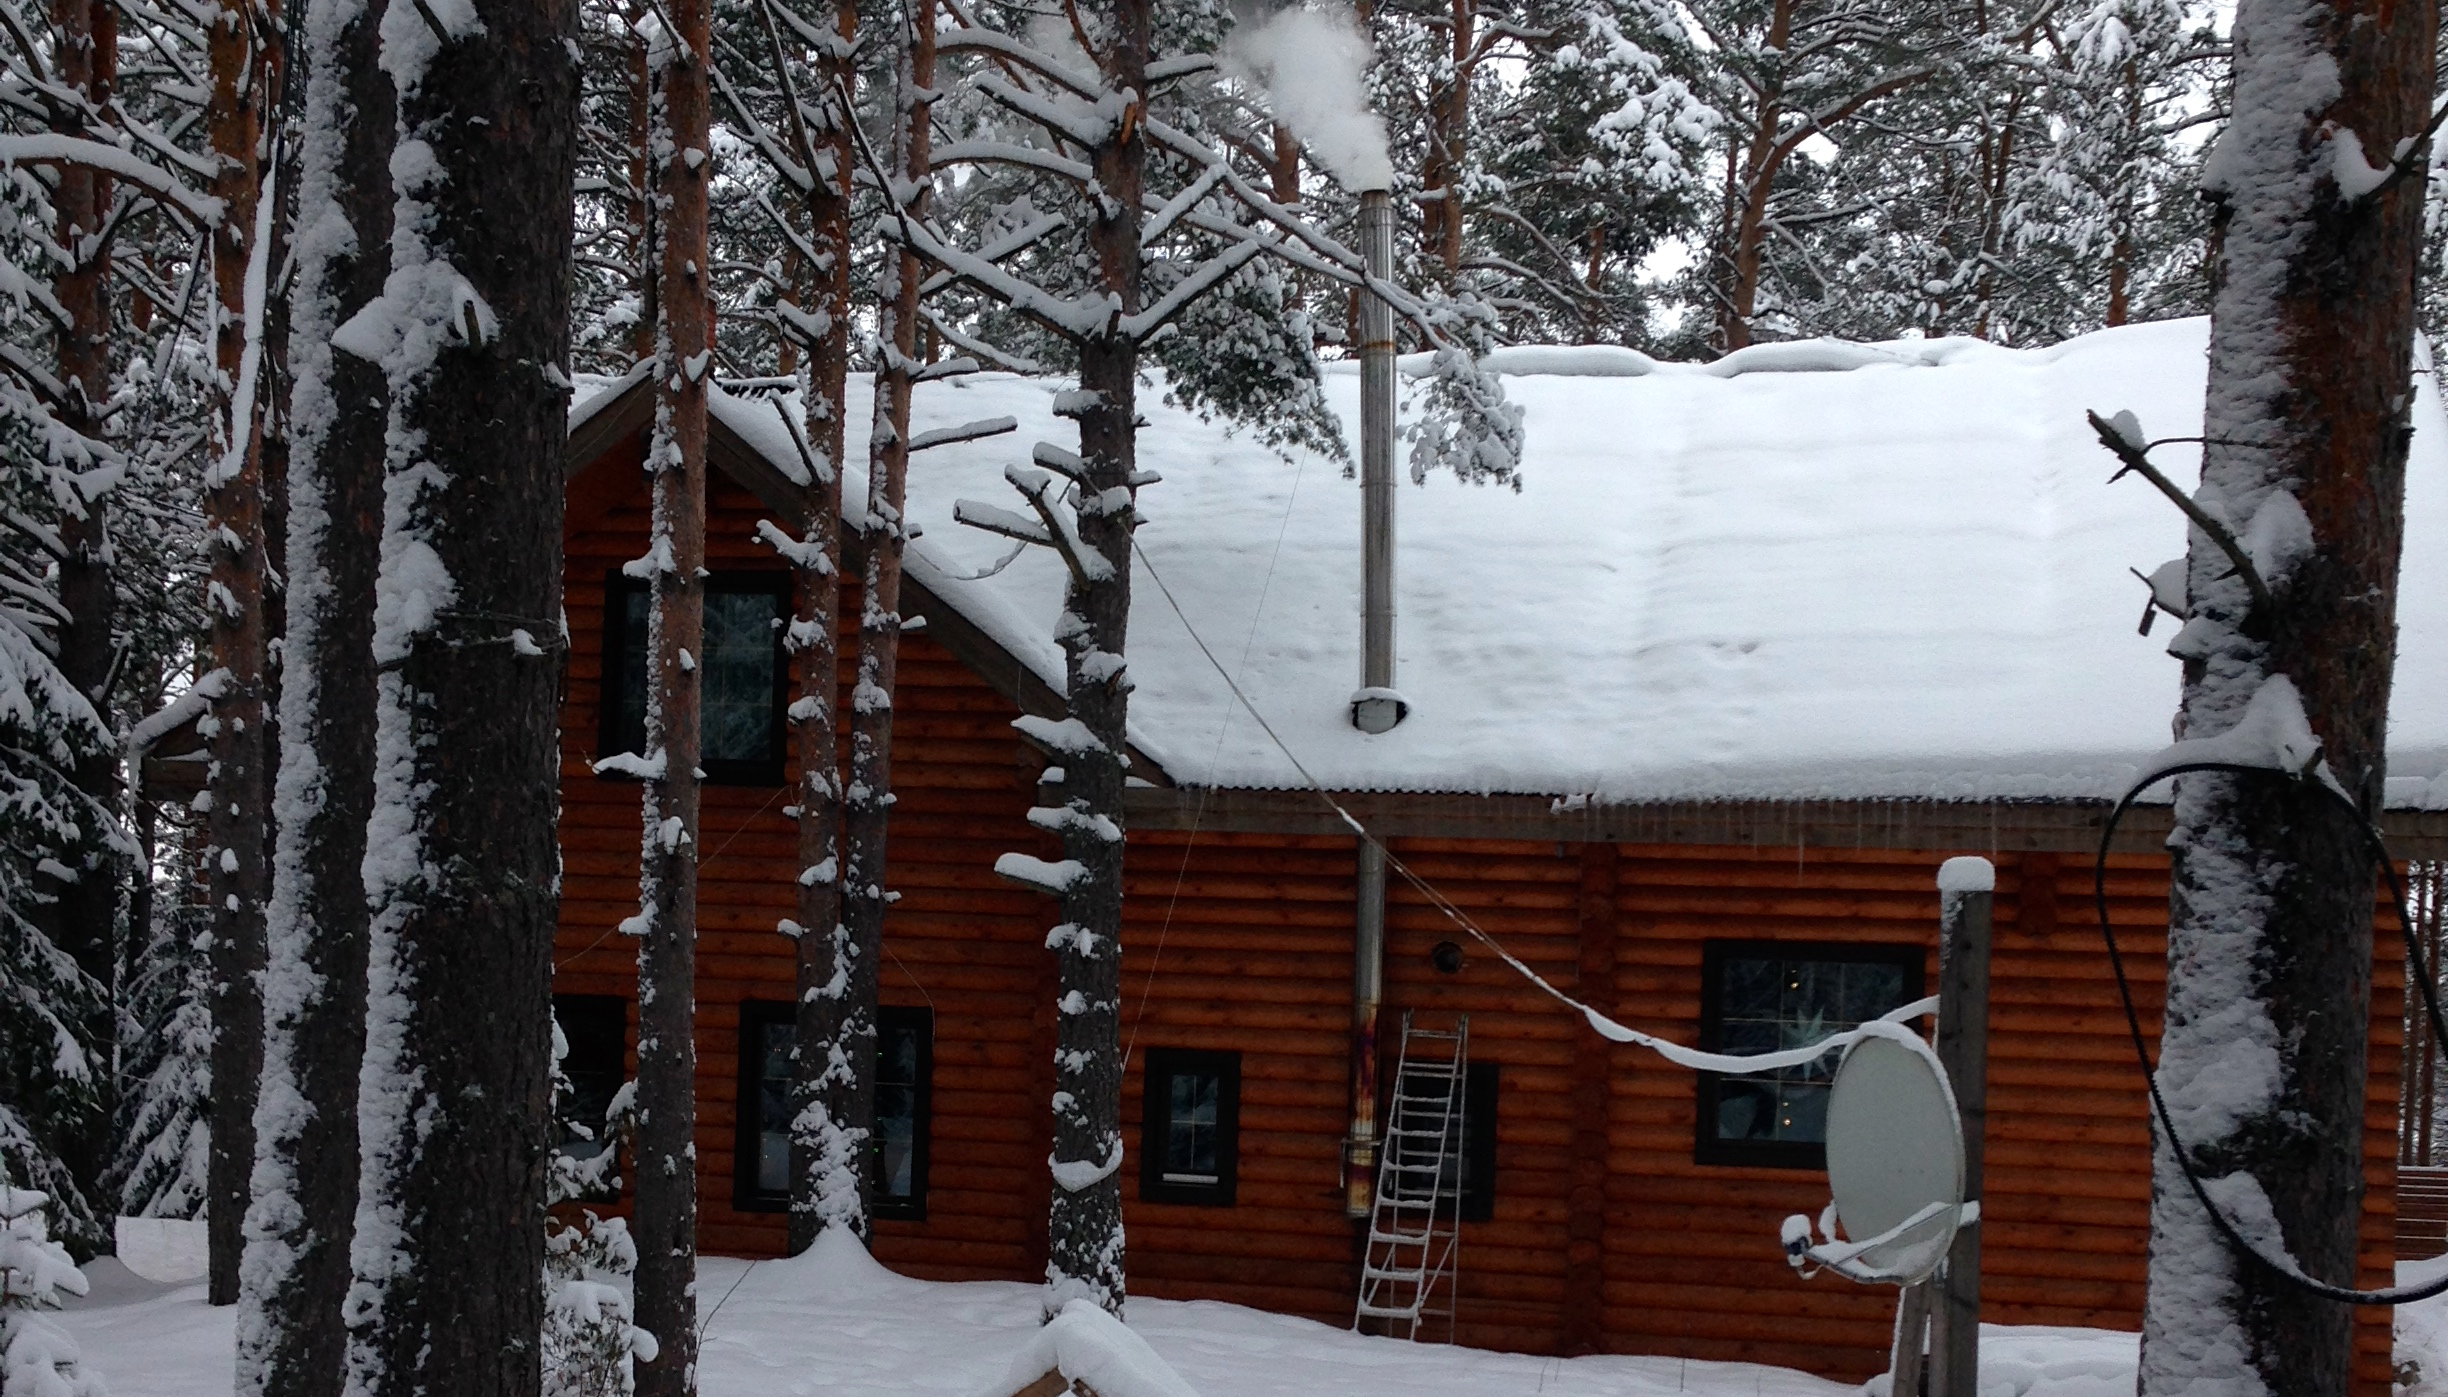 Our awesome cabin, in the middle of the woods!